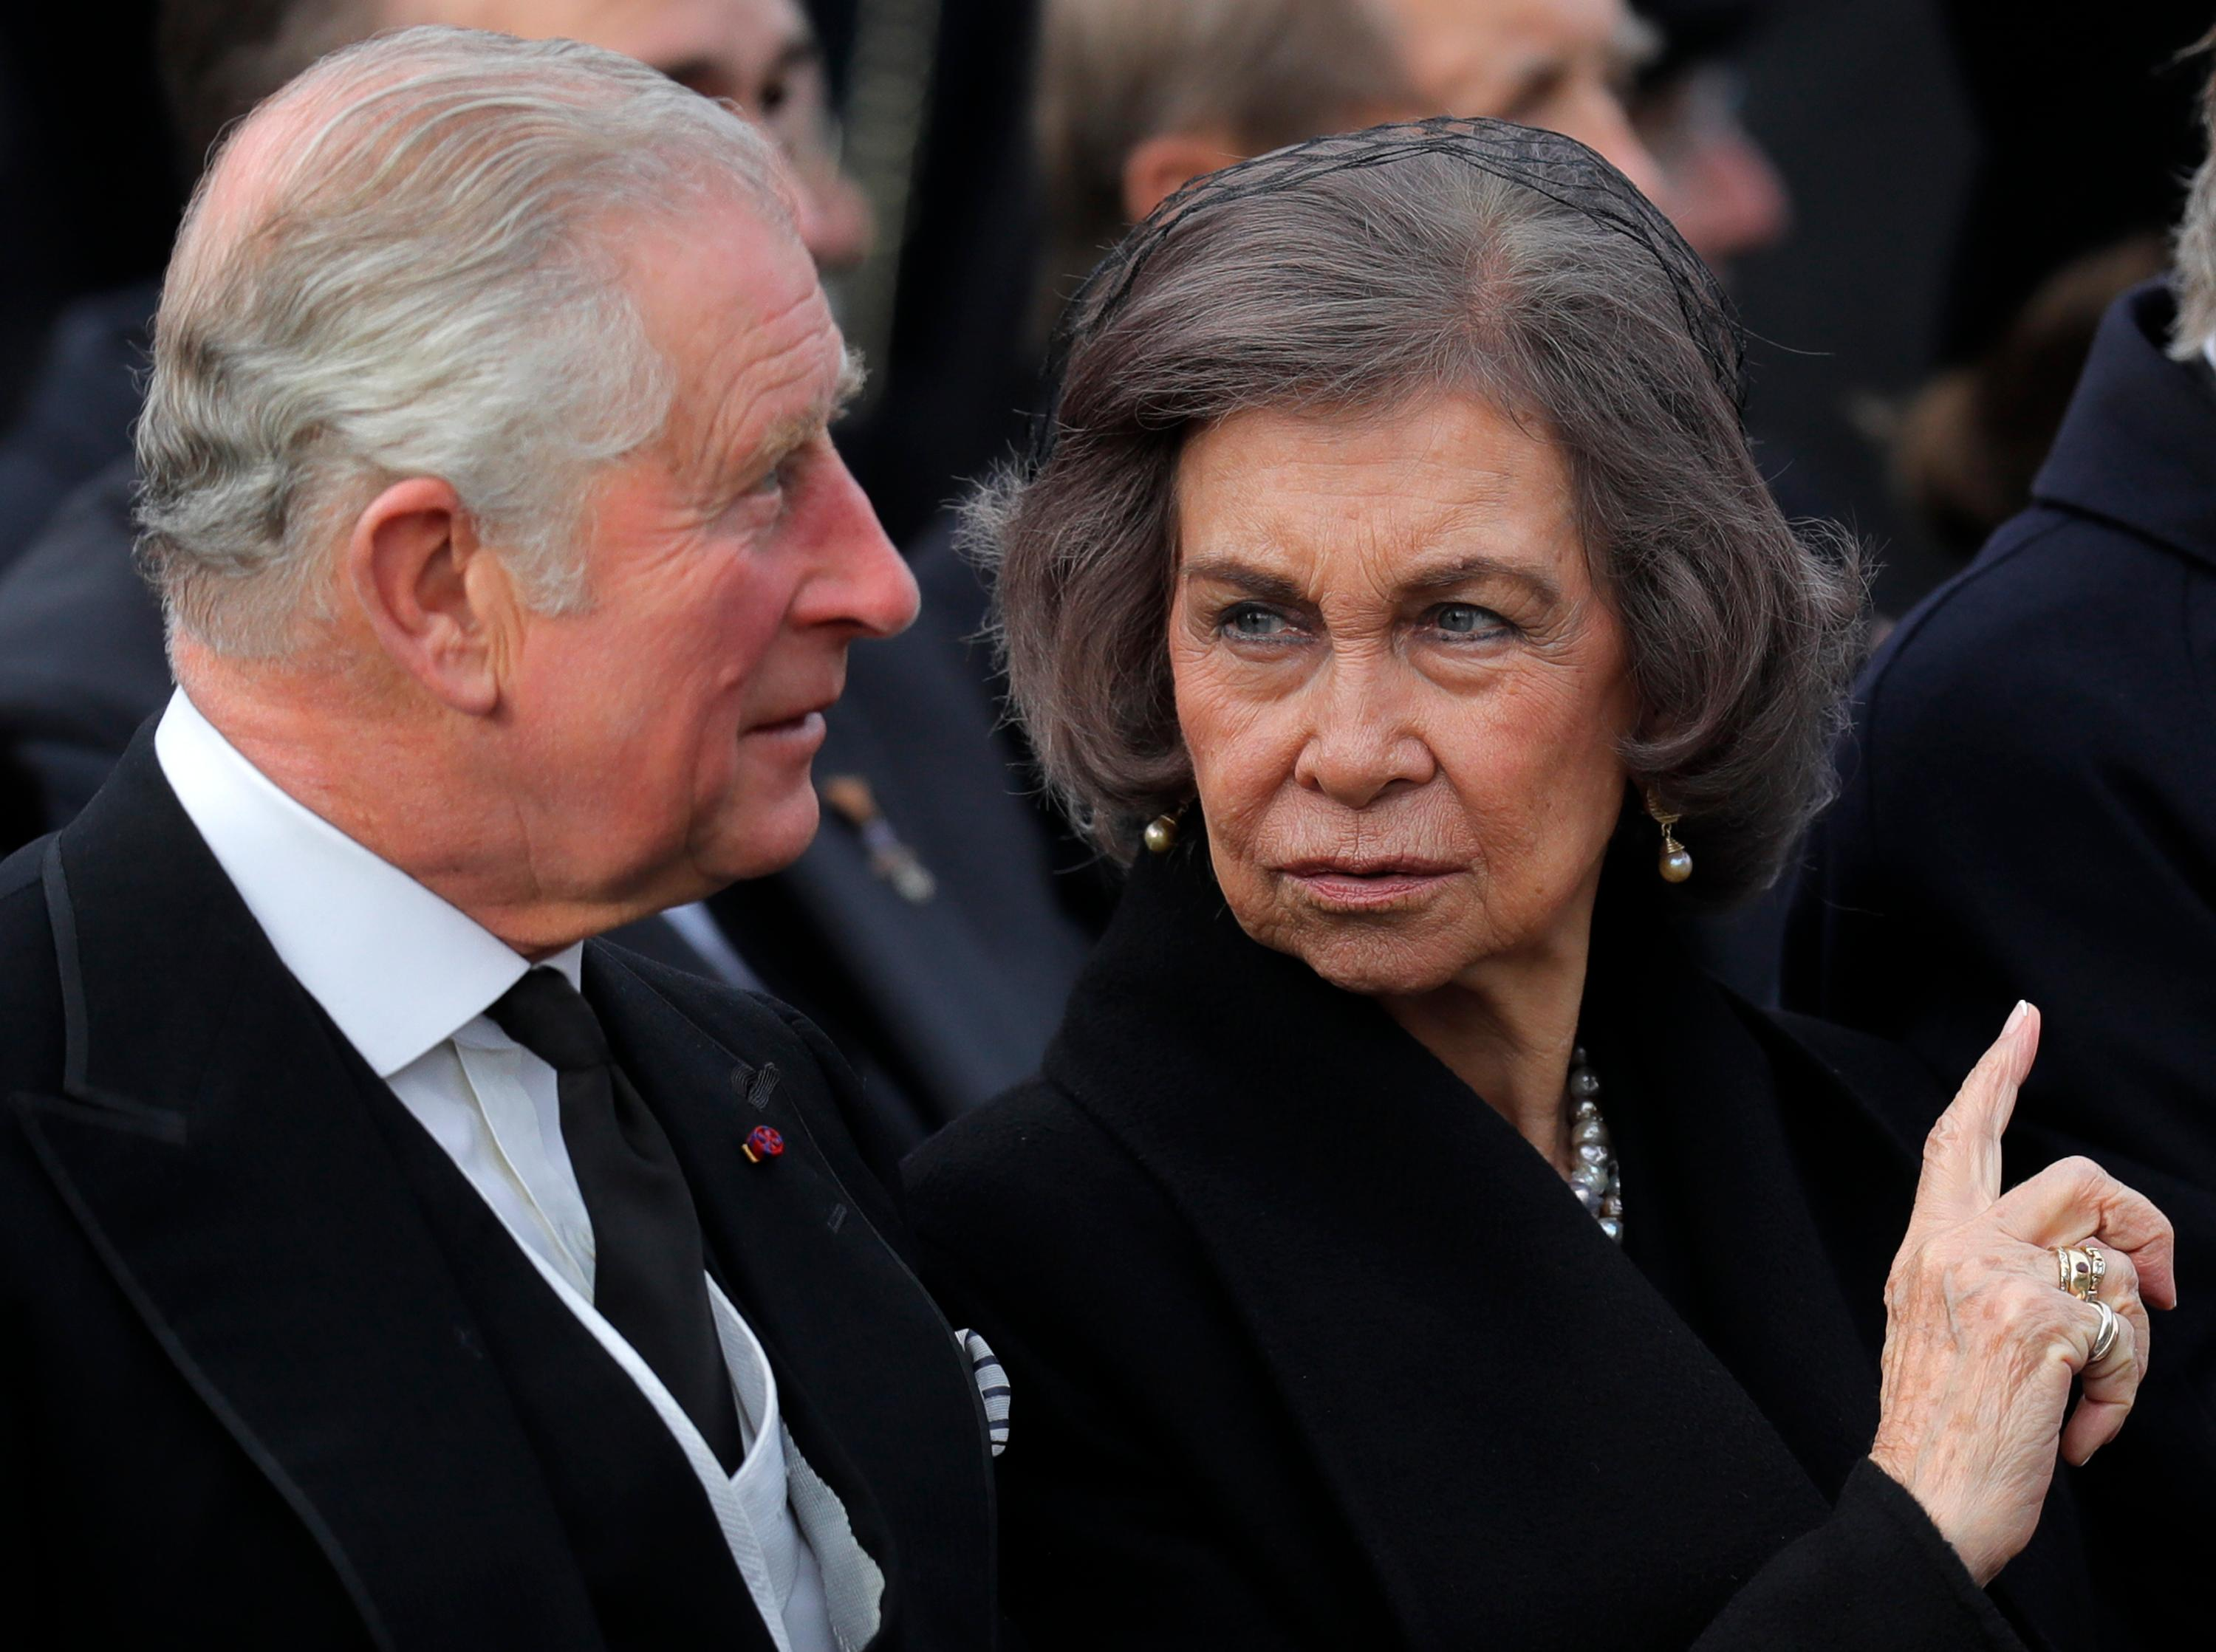 Prince Charles of Britain, left, speaks with former Spanish Queen Sofia during the funeral ceremony in tribute to late Romanian King Michael in Bucharest, Romania, Saturday, Dec.16, 2017. Thousands waited in line to pay their respects to Former King Michael, who ruled Romania during WWII, and died on Dec. 5, 2017, aged 96, in Switzerland. (AP Photo/Vadim Ghirda)